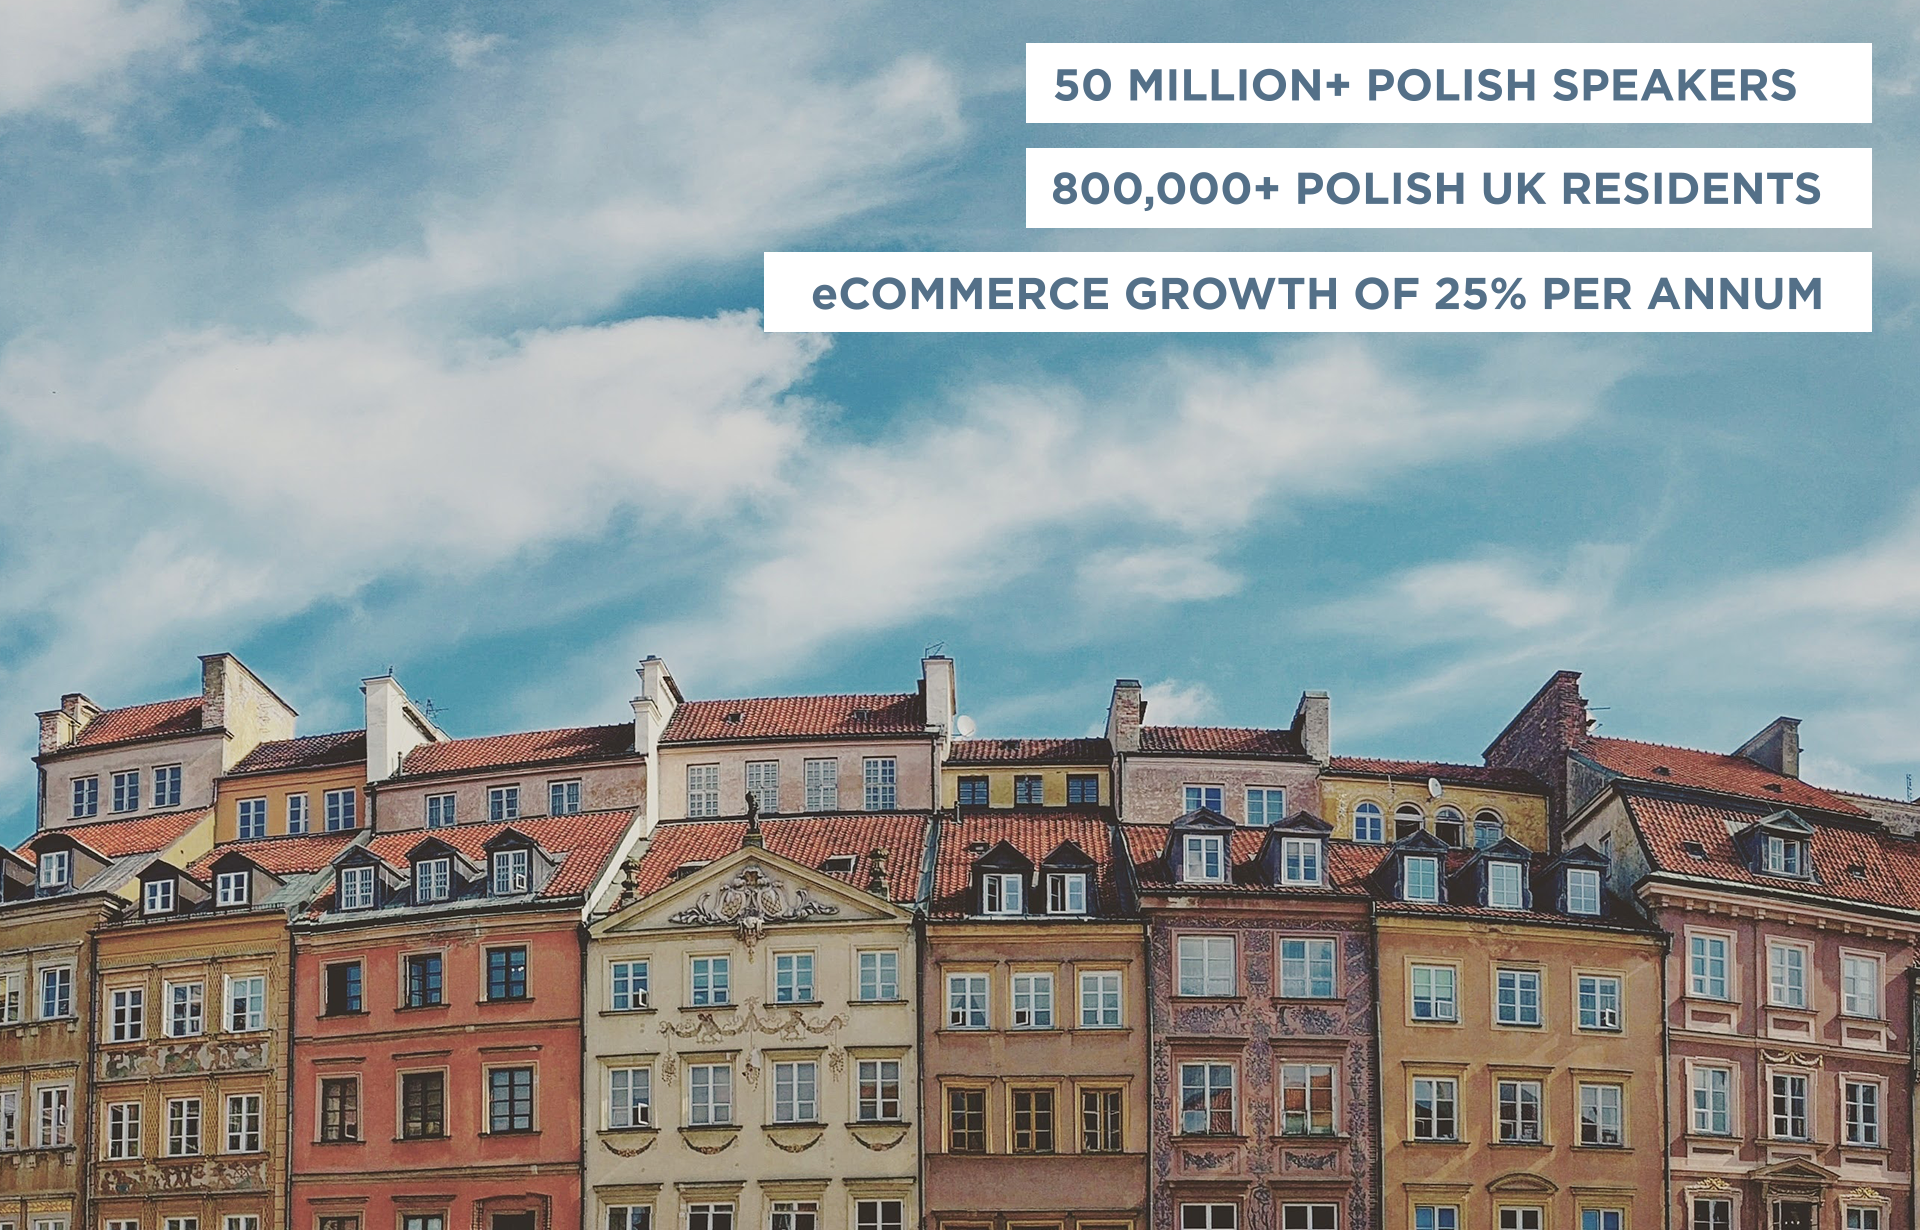 "Image of Old Warsaw accompanied with the text: ""50 Million+ Polish speakers; 800,000 Polish UK residents; eCommerce growth of 25% per annum."""